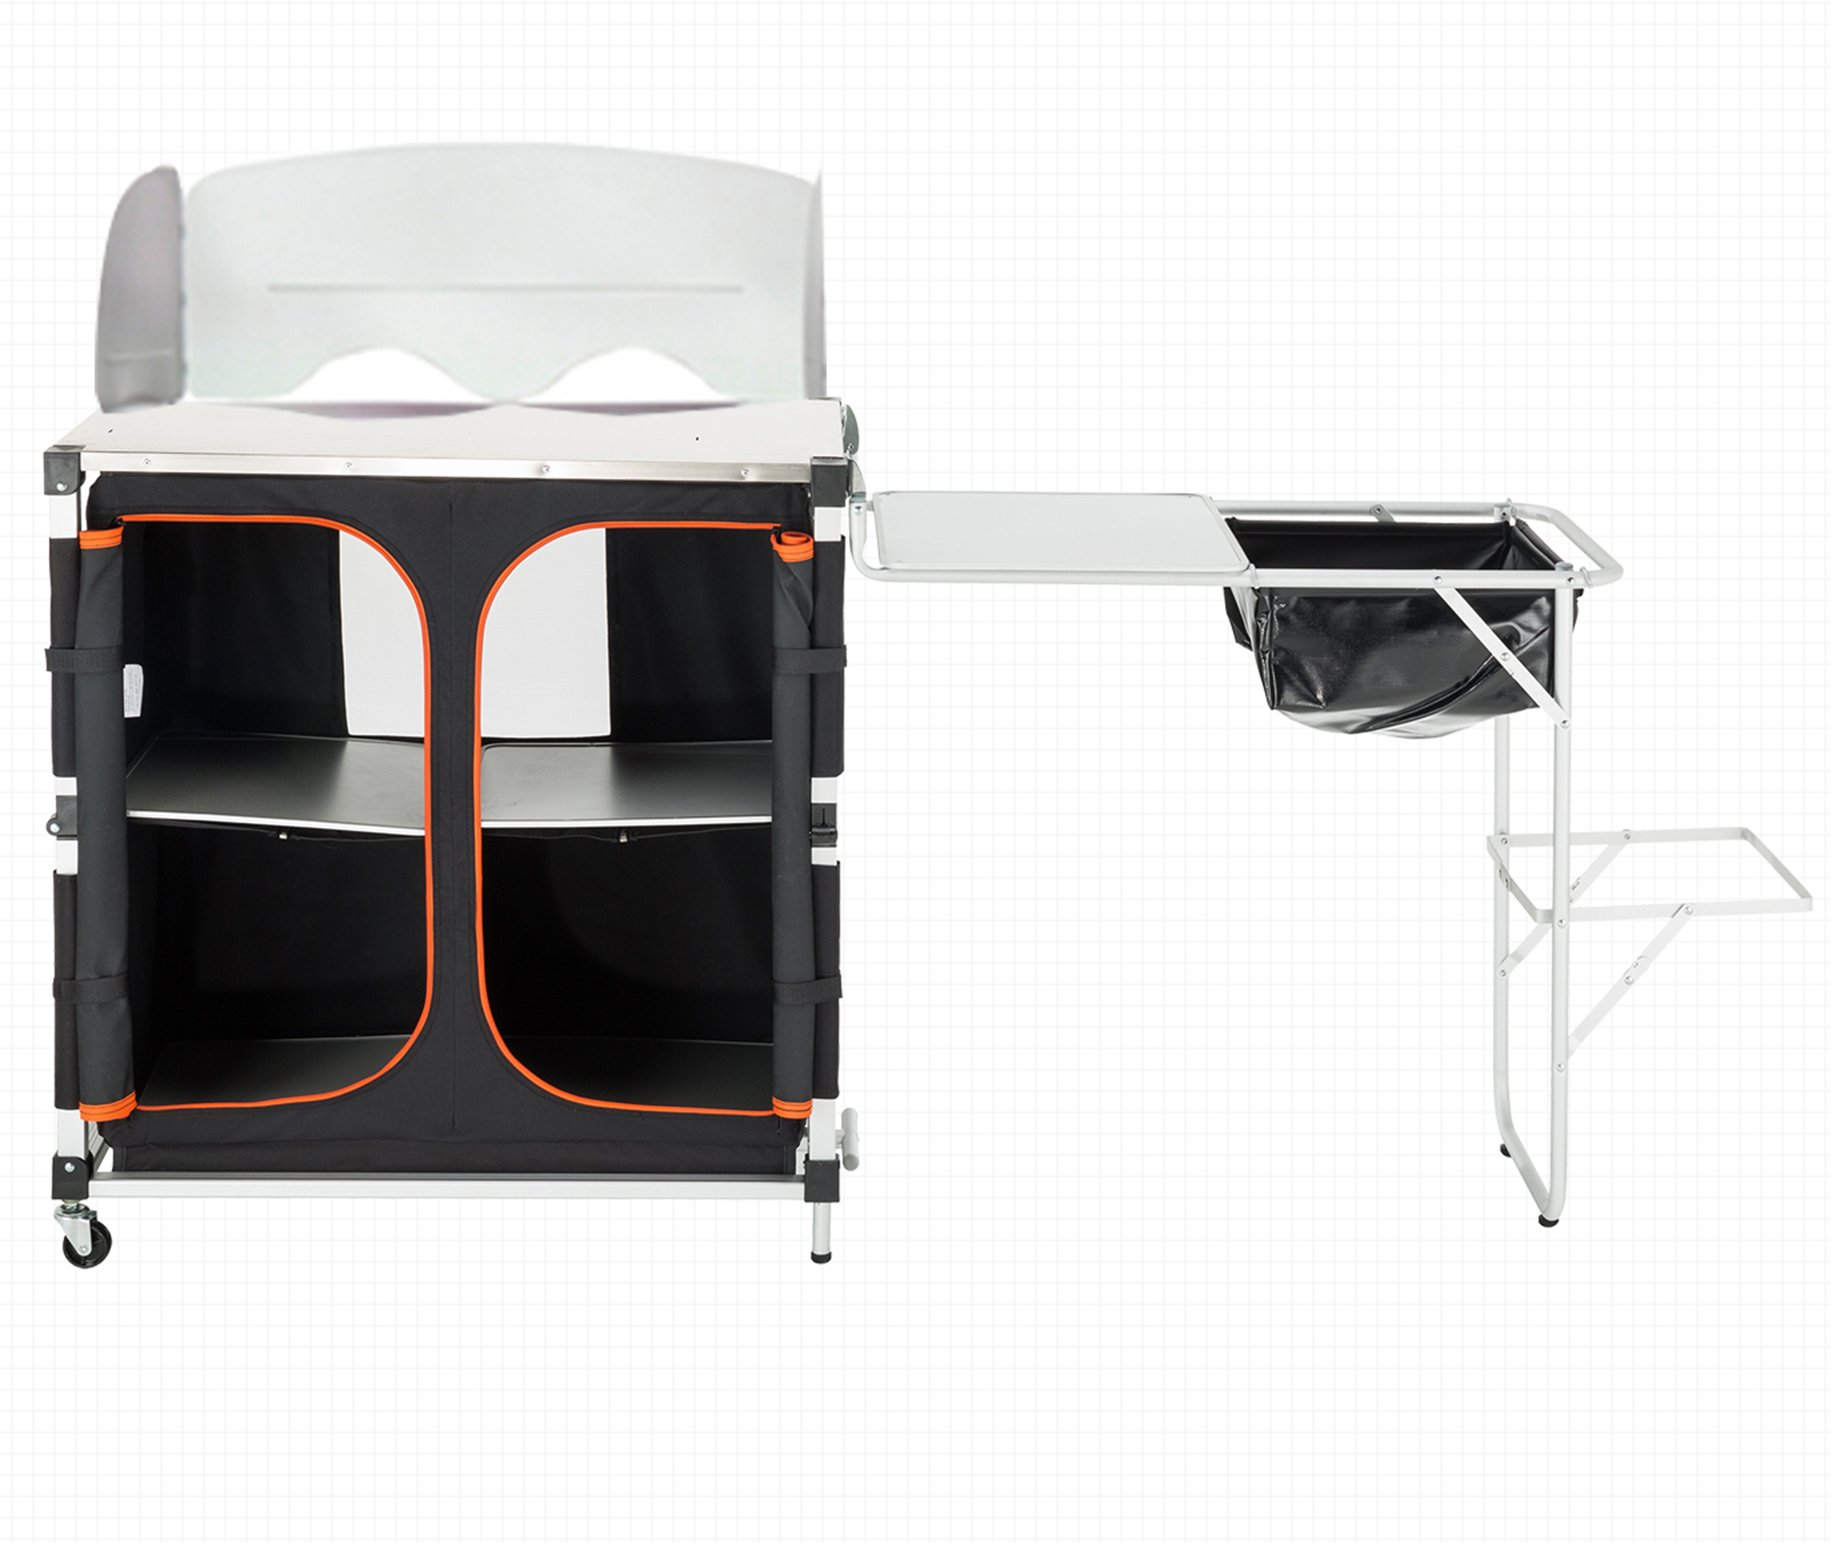 KingCamp Portable Light Multifunctional Camping Kitchen Cooking Table with Wheels Locker Sink by KingCamp (Image #1)